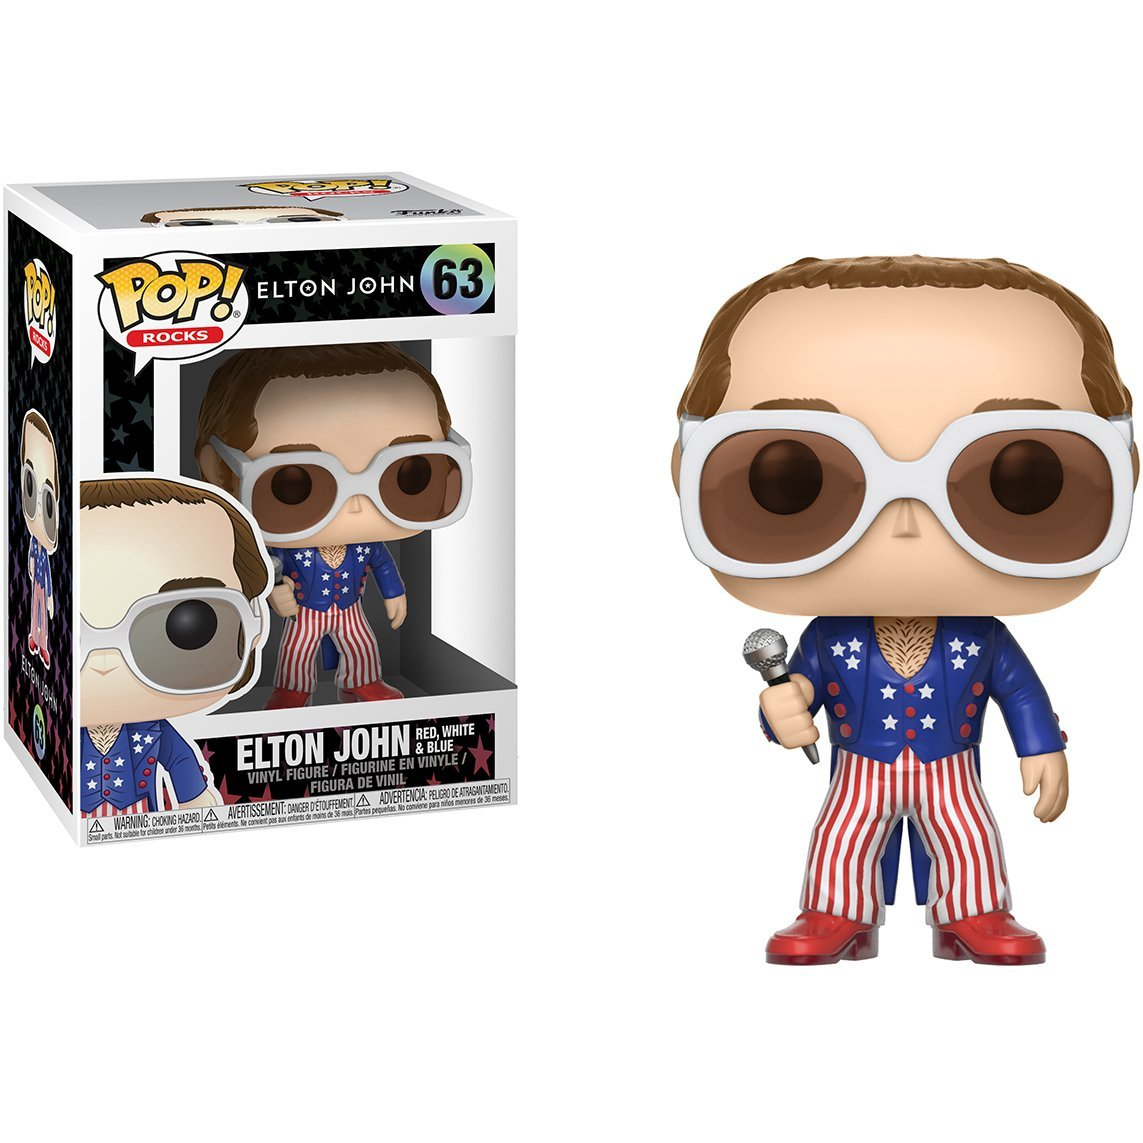 Elton John Red White and Blue Funko Pop! Rocks